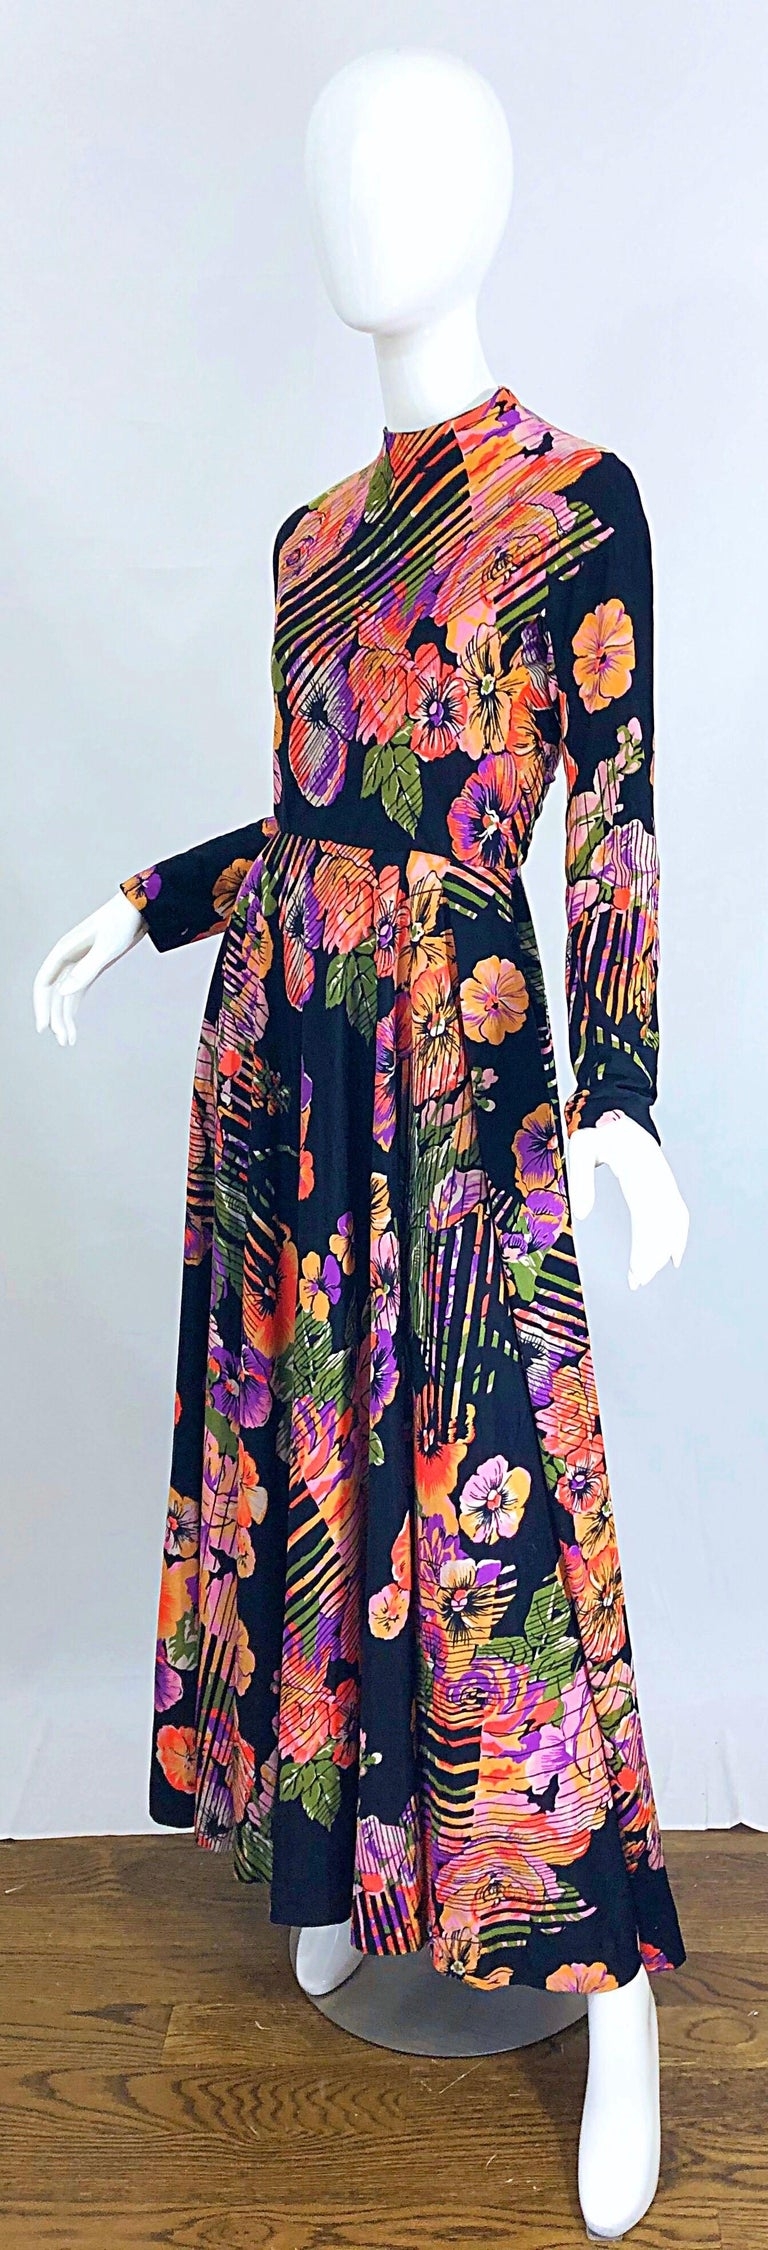 Geoffrey Beene 1970s Abstract Flower Print Long Sleeve High Neck 70s Maxi Dress For Sale 2